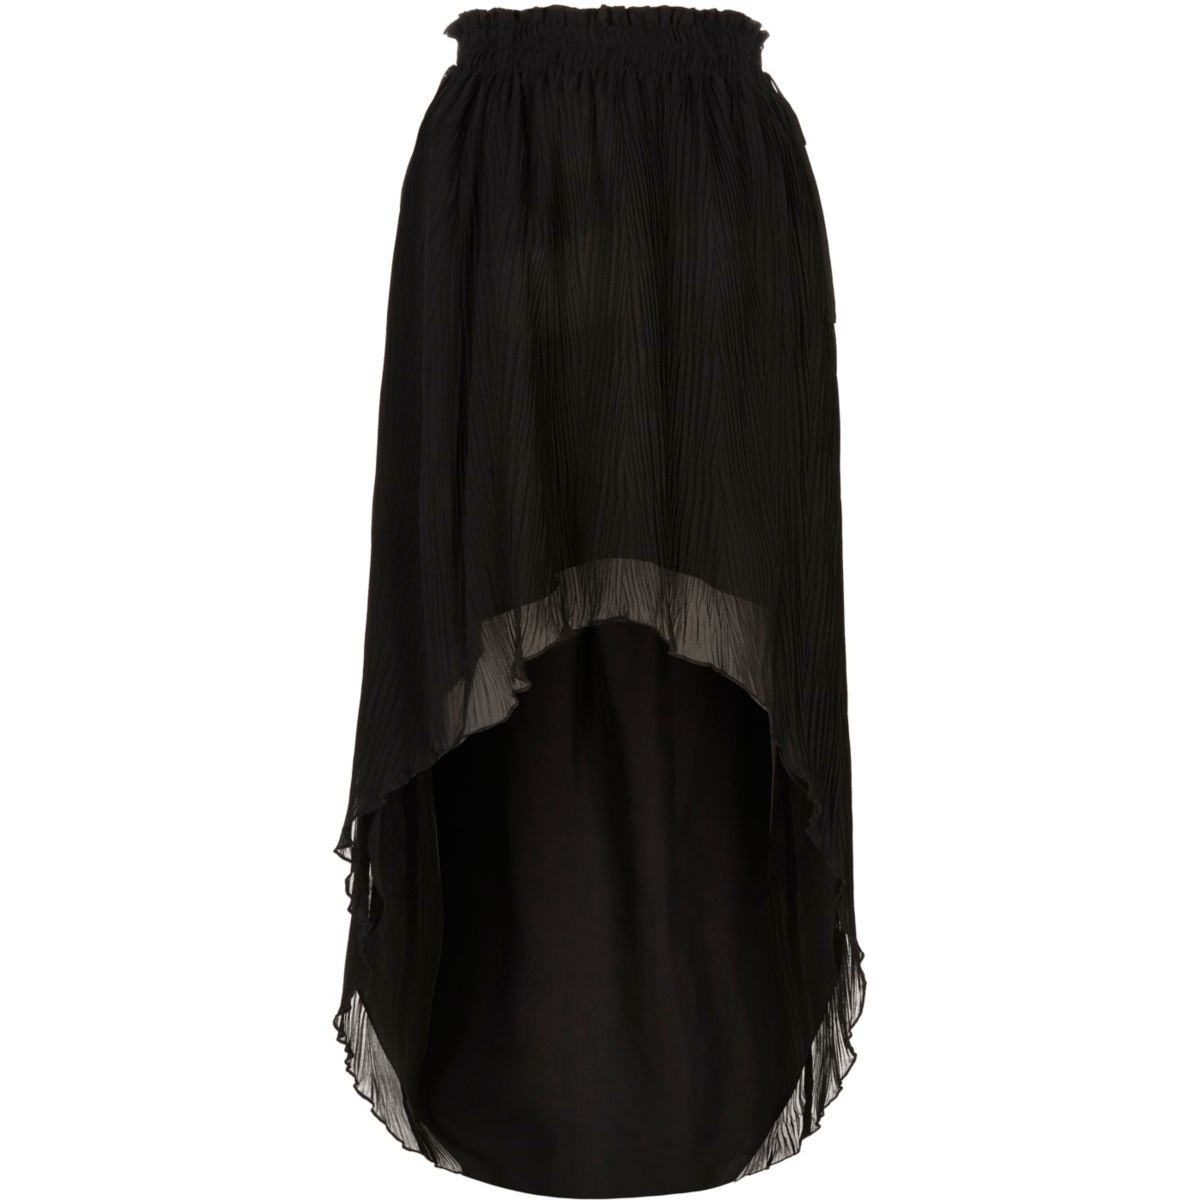 Black pleated high-low maxi skirt